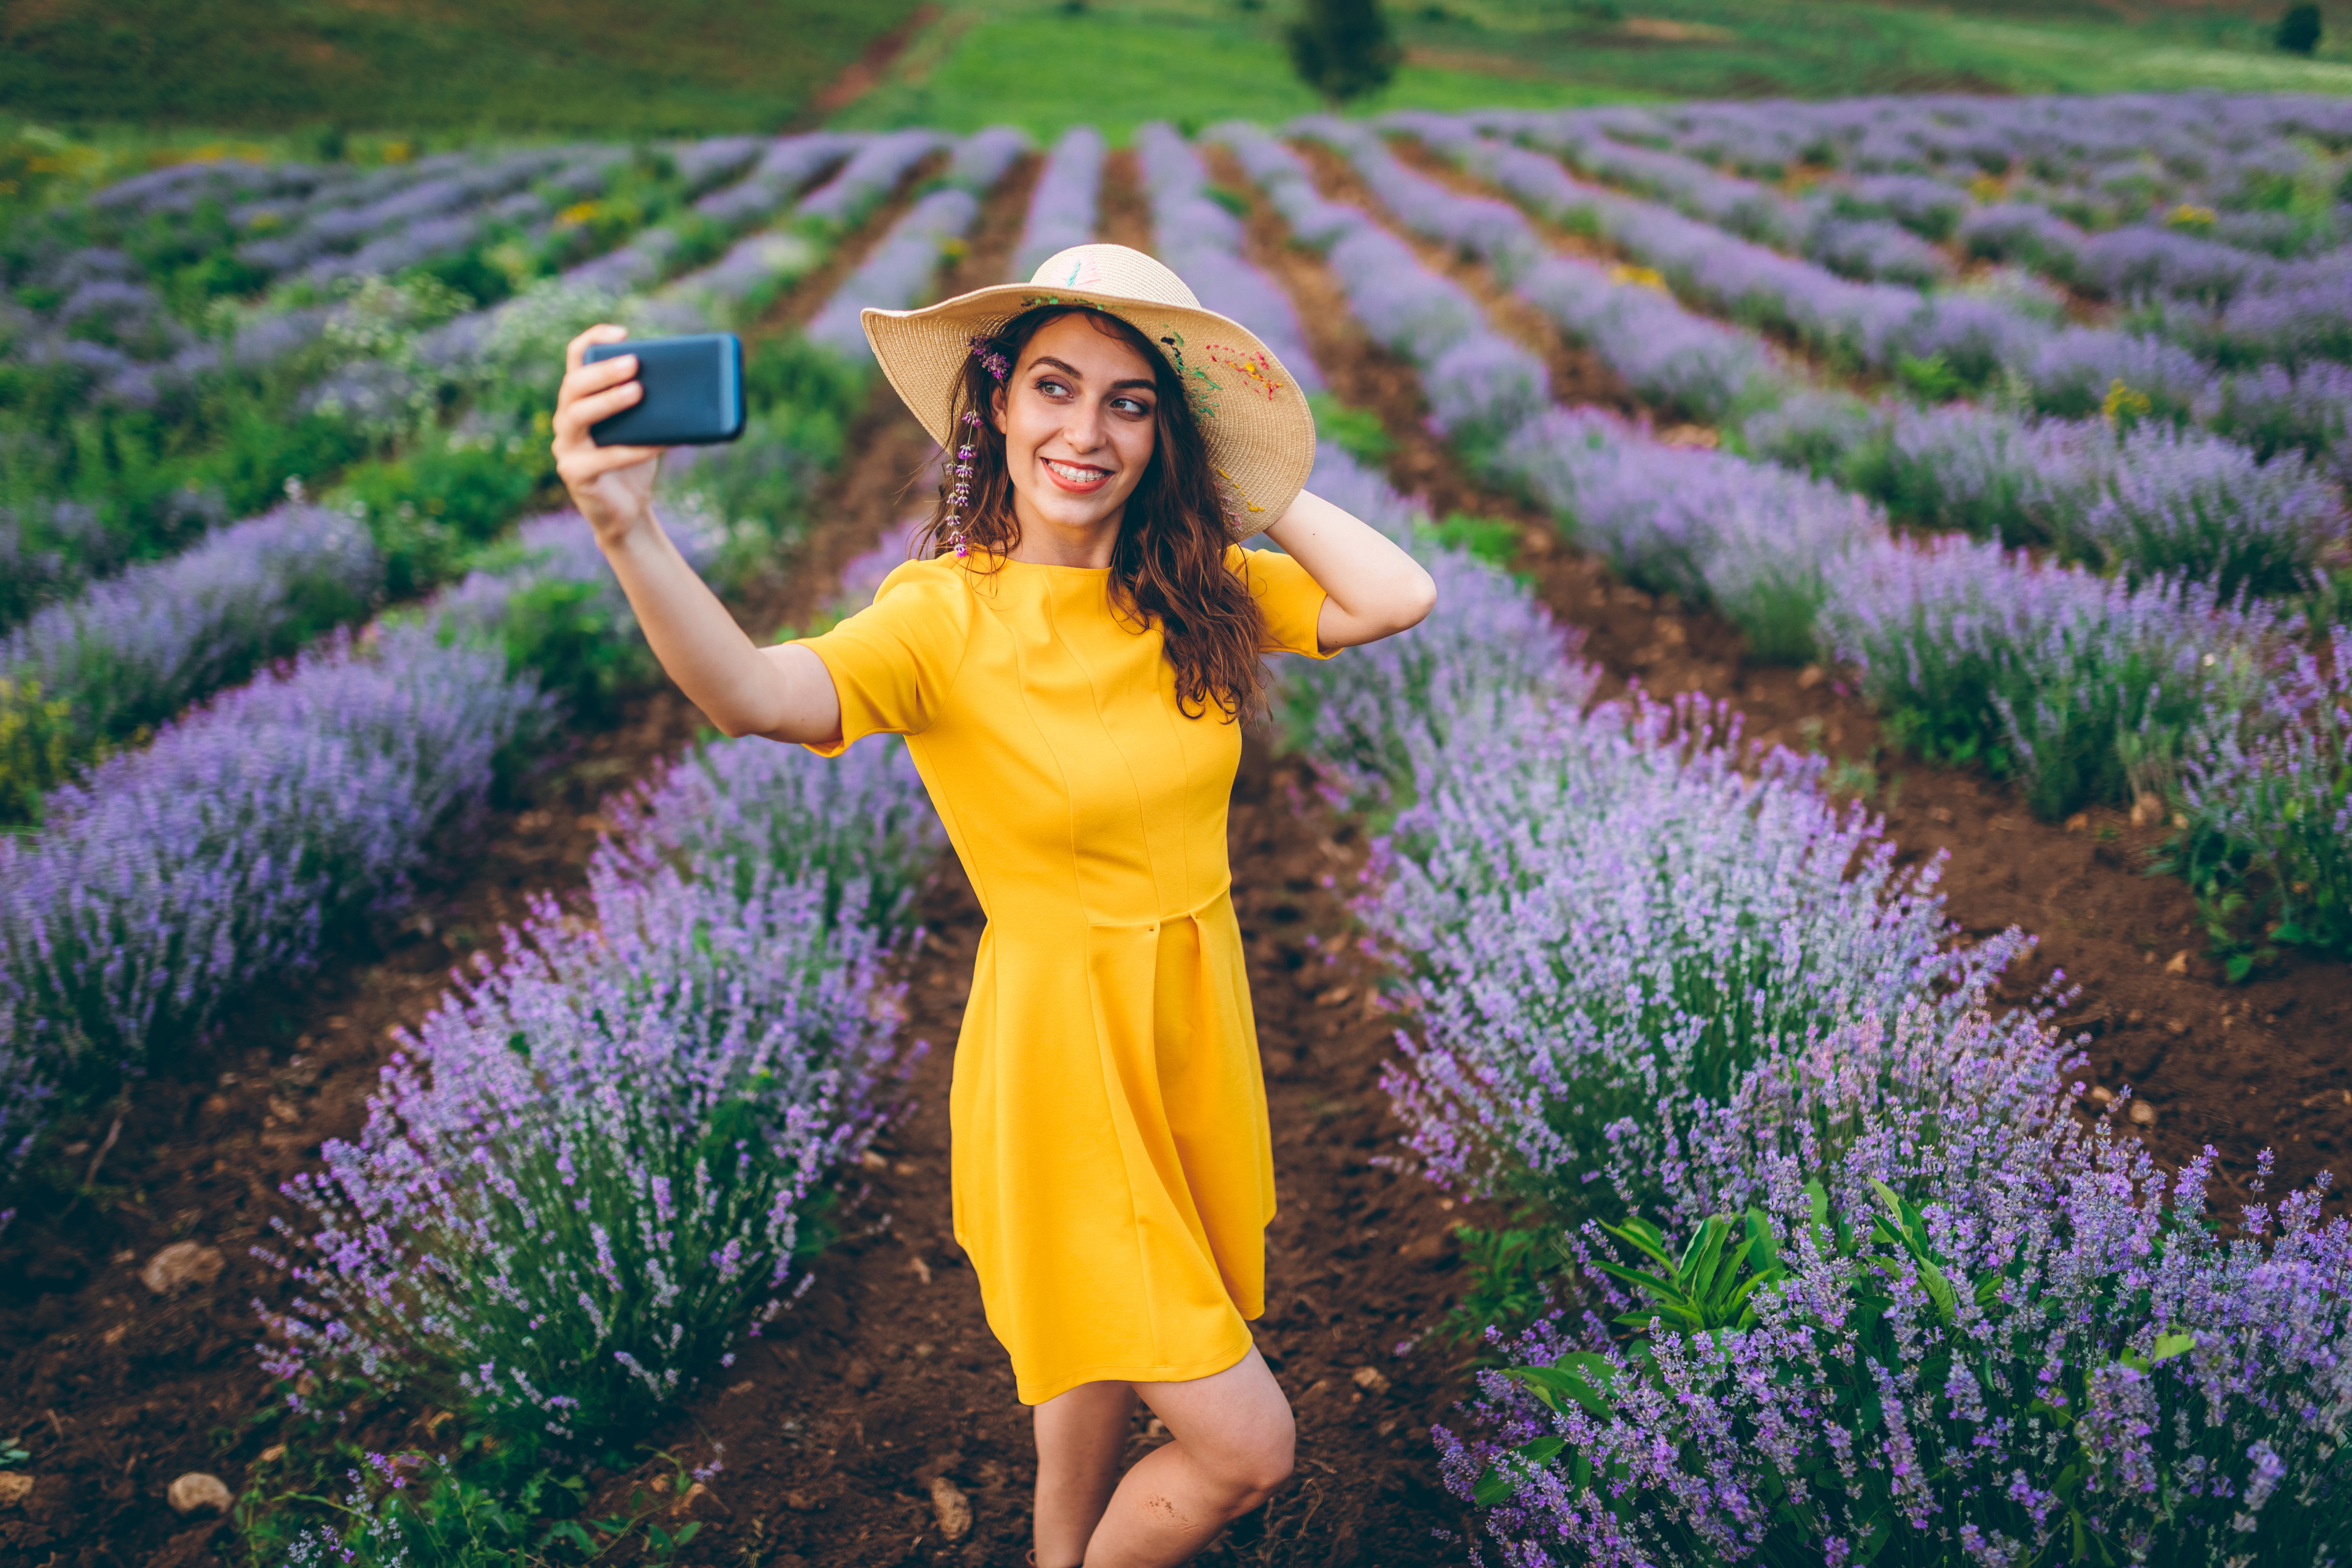 Online Dating And Asking For More Photos Or Selfies?